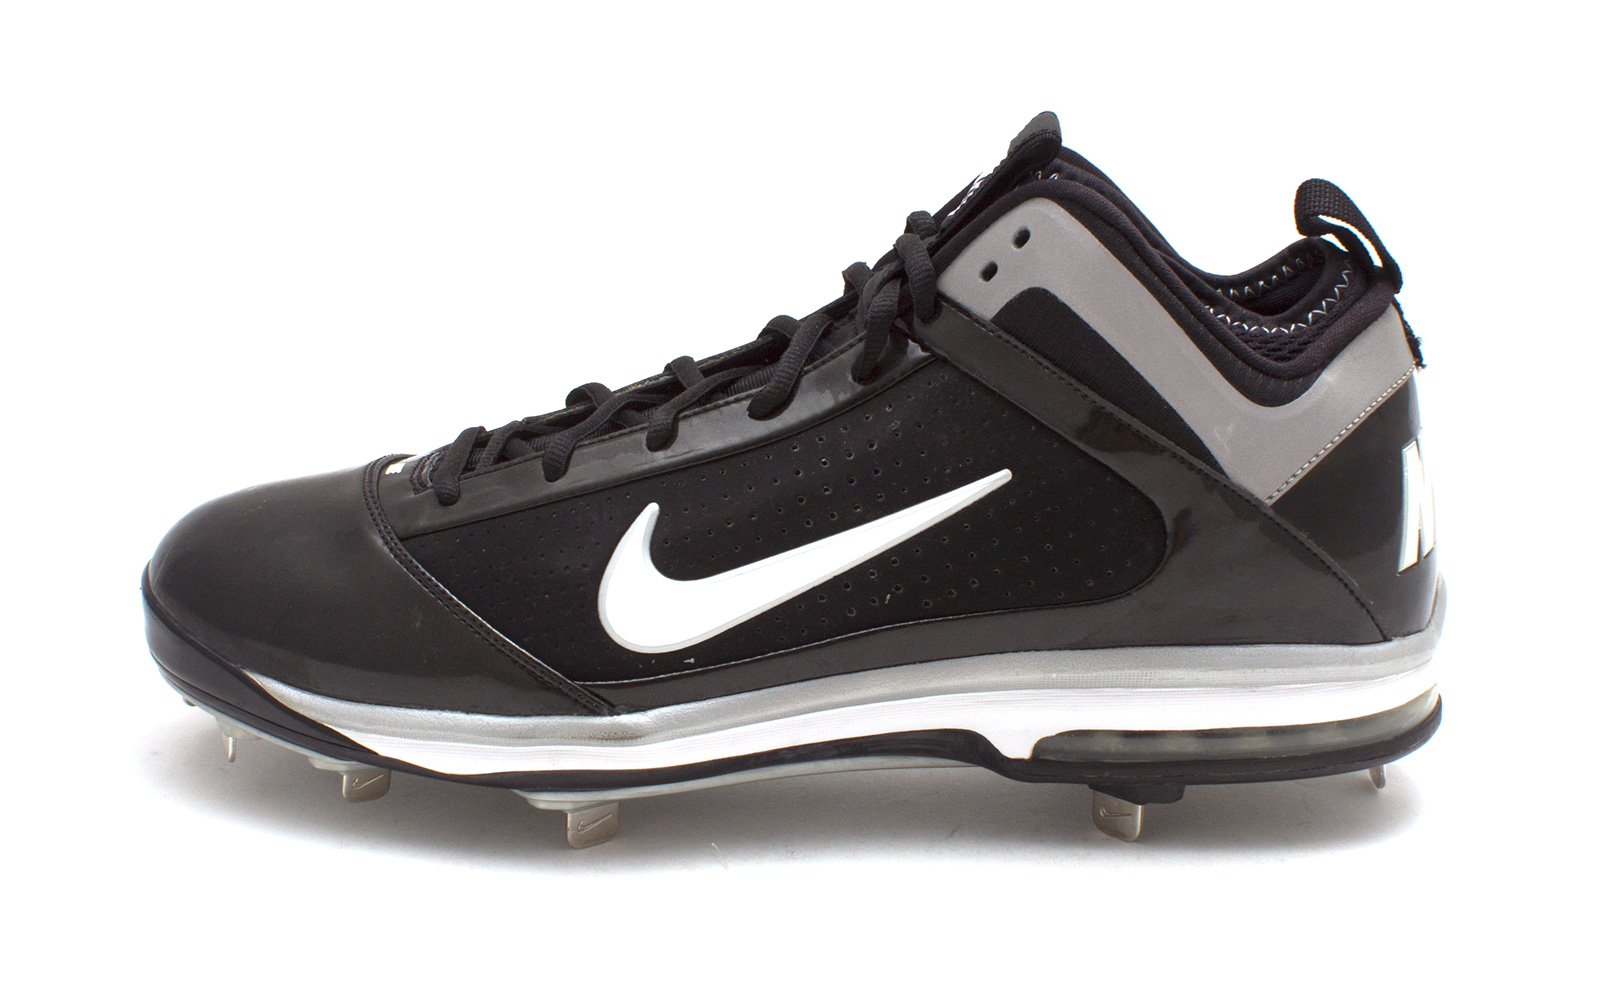 huge discount 6a992 ae6ef Details about Nike AIR MAX DIAMOND ELITE METAL 15 Mens Athletic Shoes Black  WHITE  SILVER 15